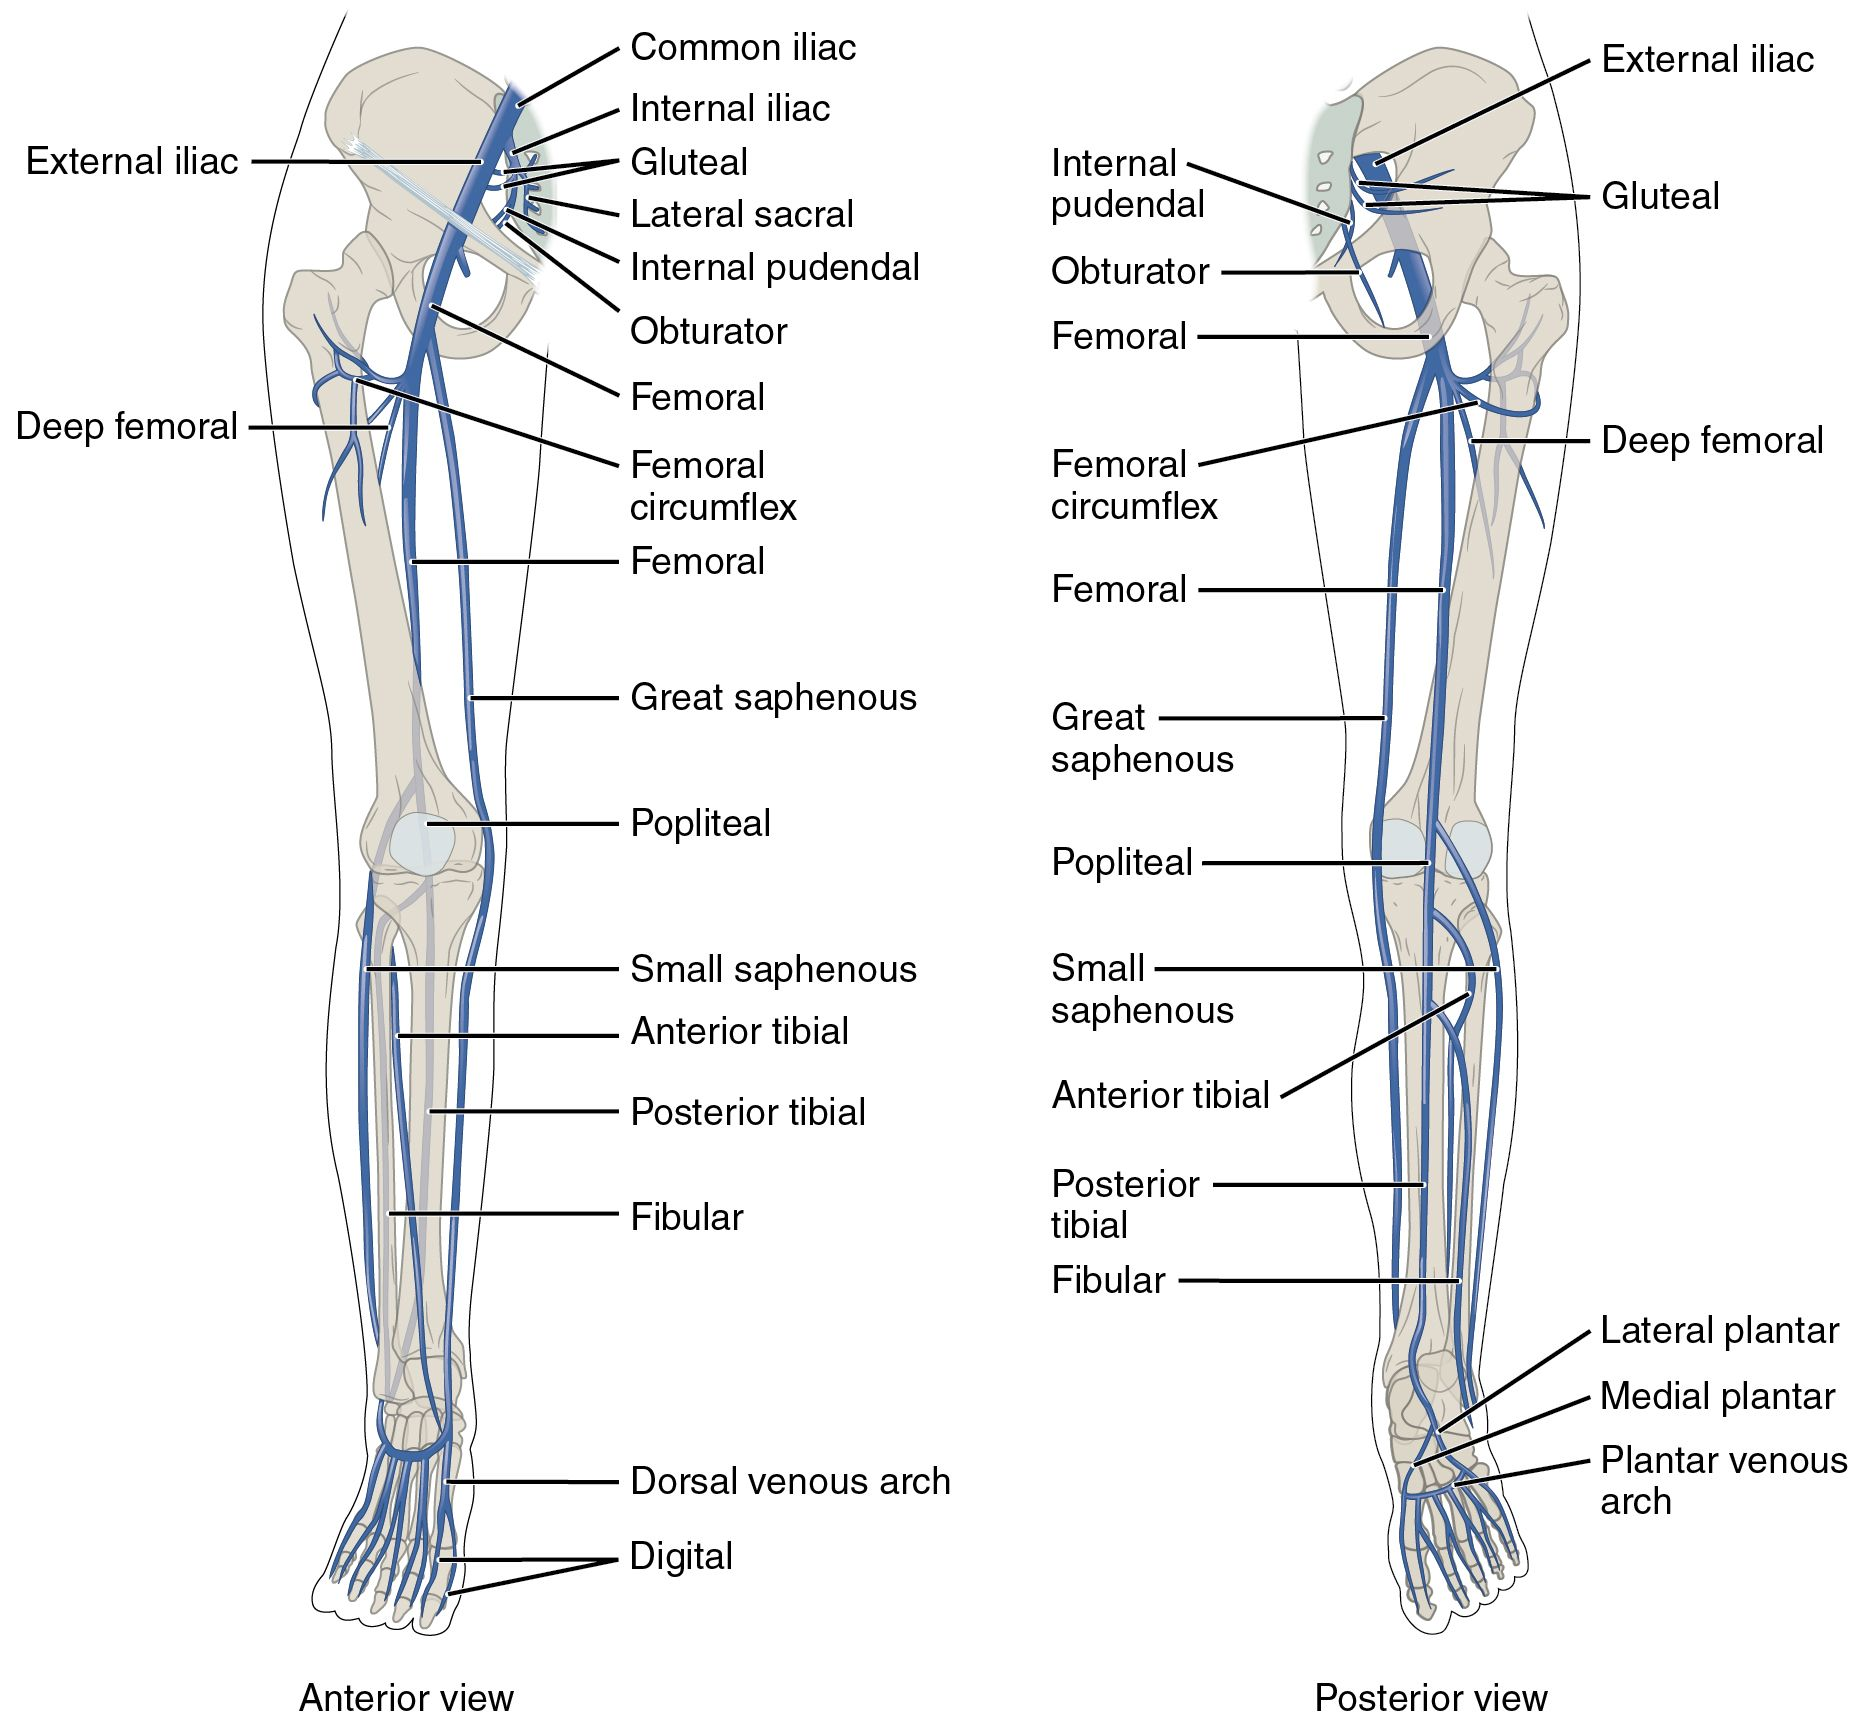 The left panel shows the anterior view of veins in the legs, and the ...